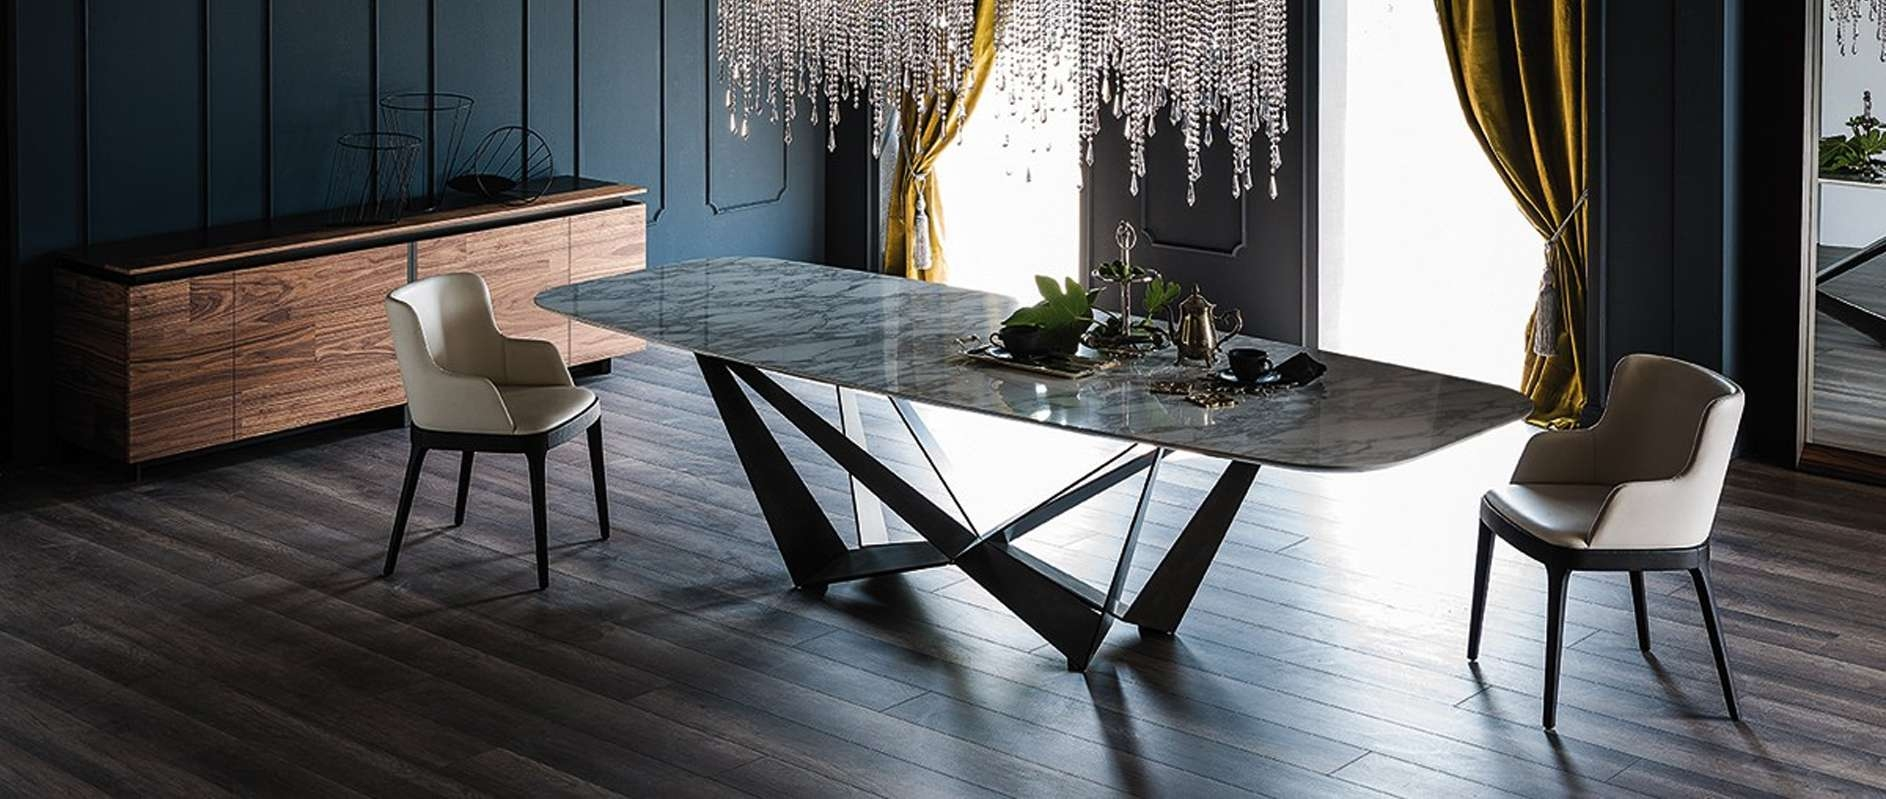 Modern Dining Room Furniture – Modern Dining Tables, Dining Chairs Throughout Dining Room Sets With Sideboards (View 18 of 20)